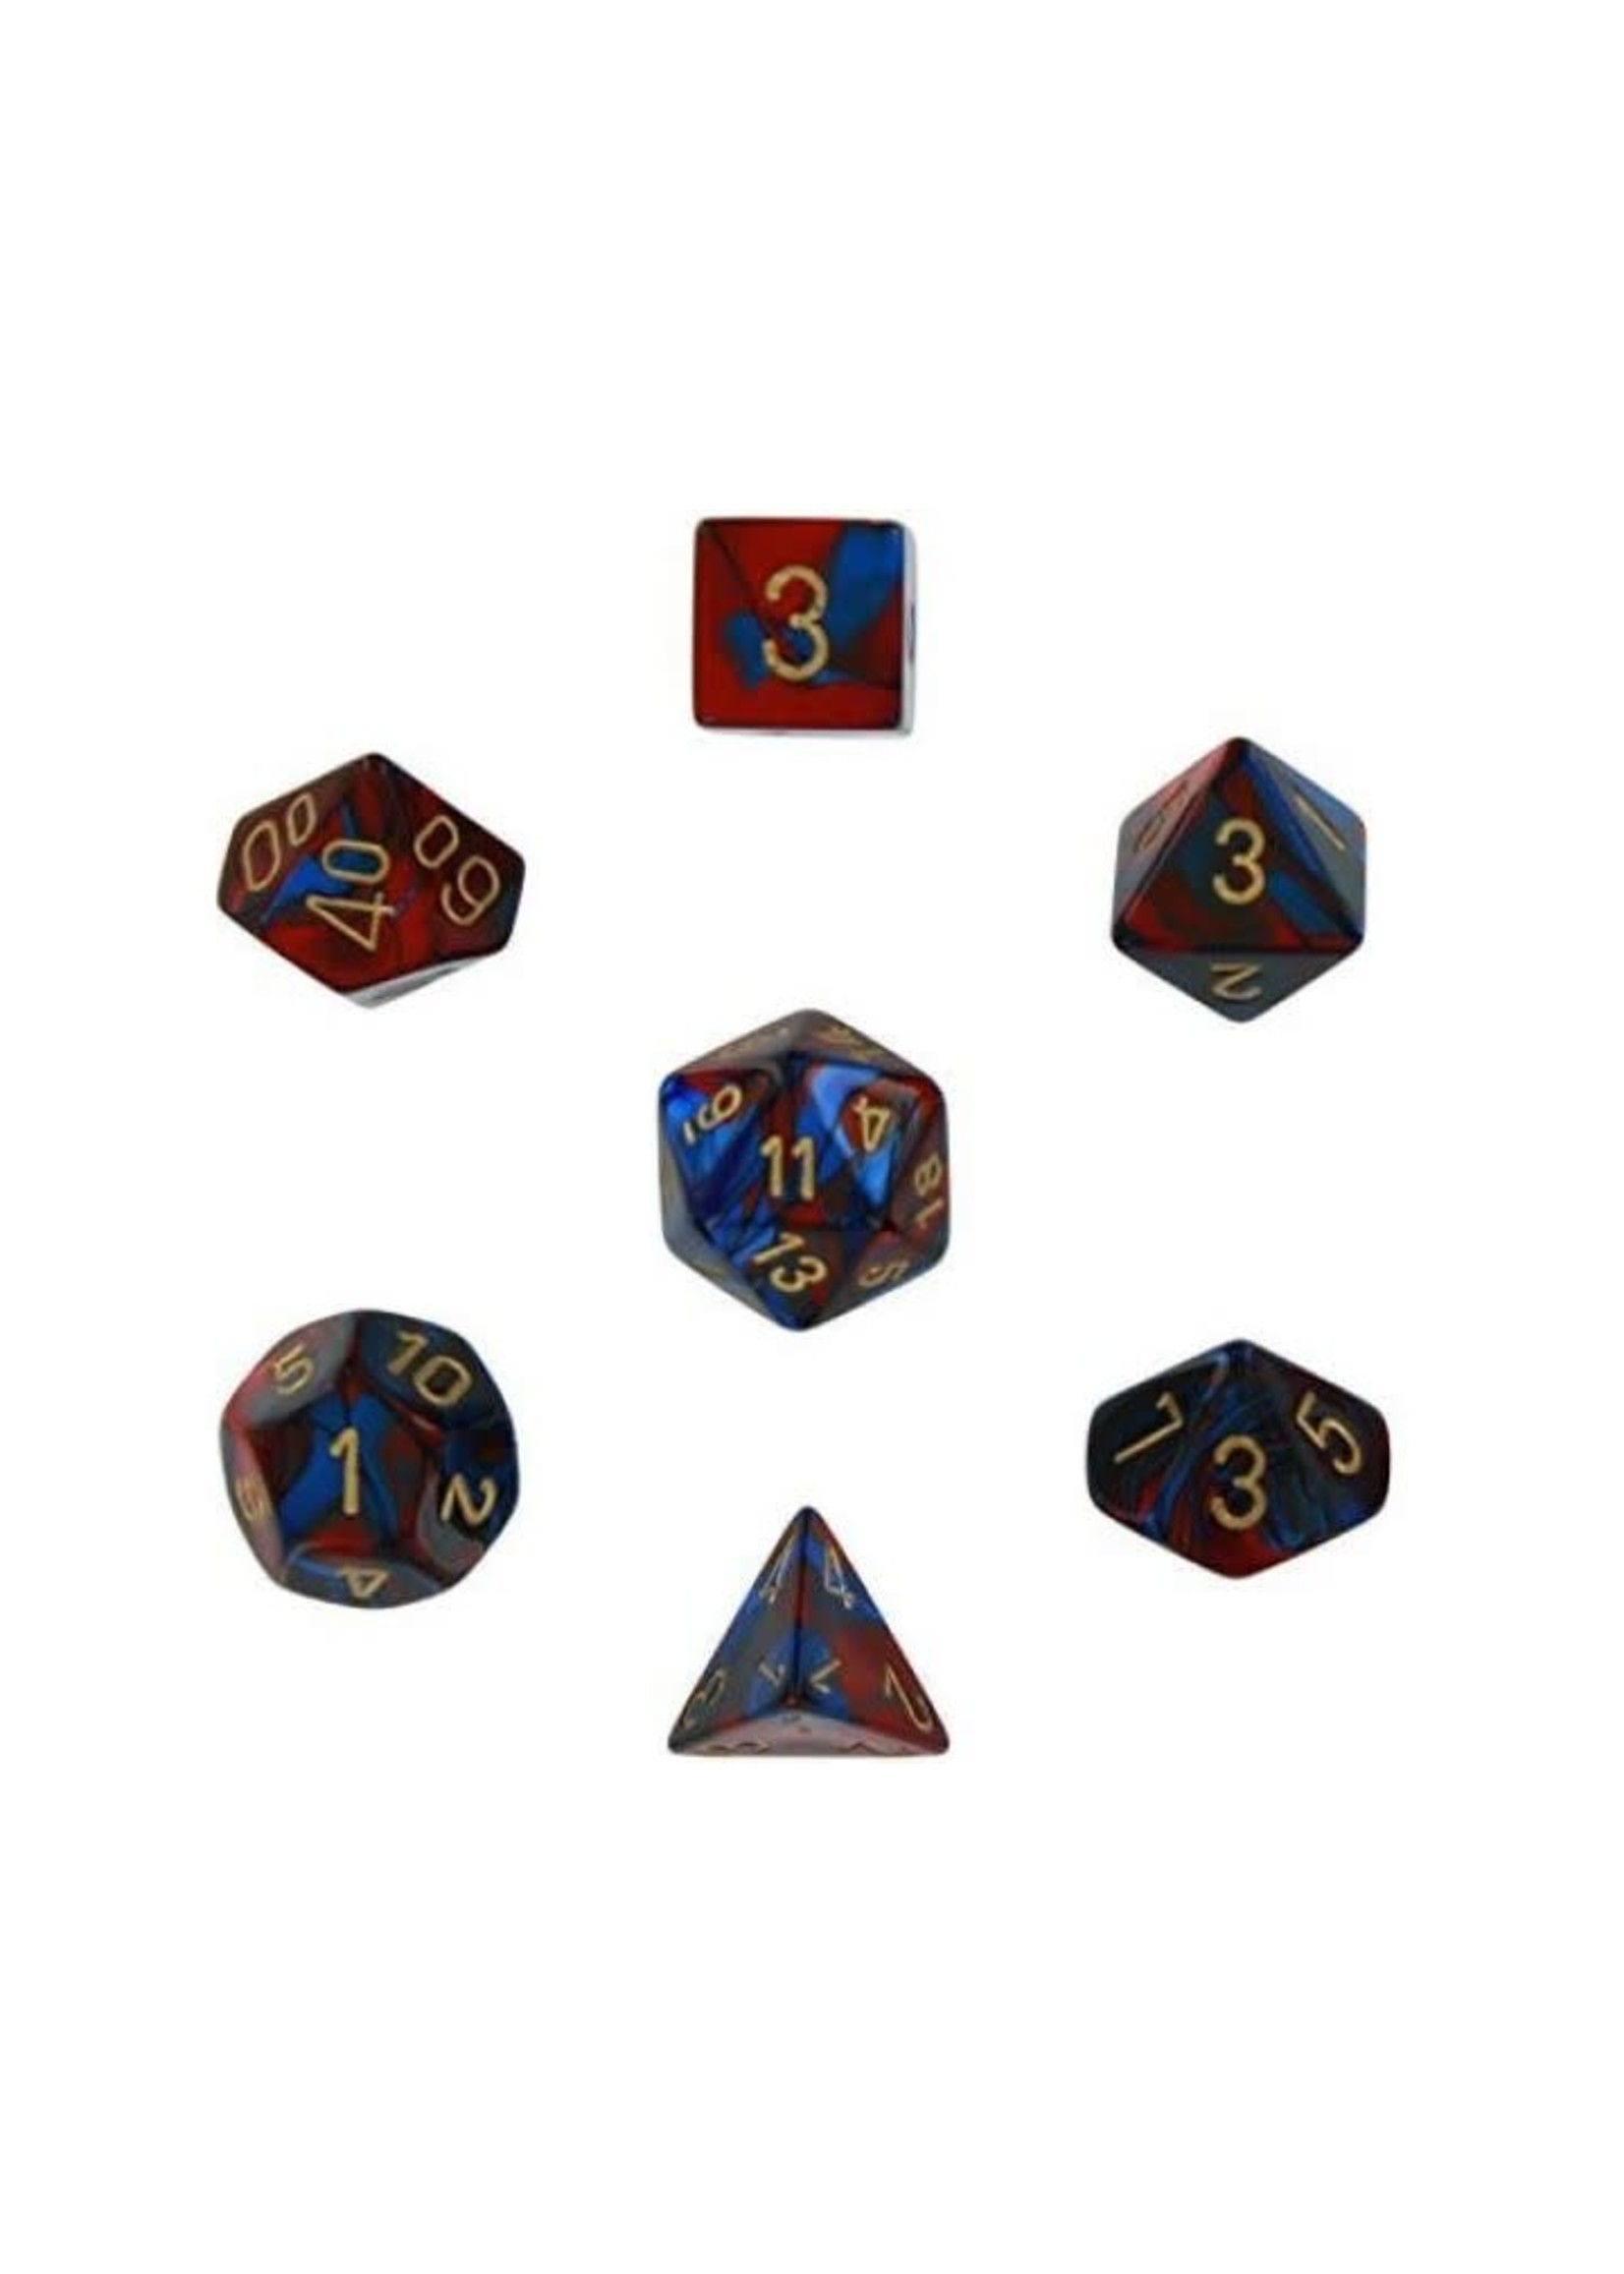 Gemini Polyhedral 7-Die Sets - Blue-Red W/ Gold